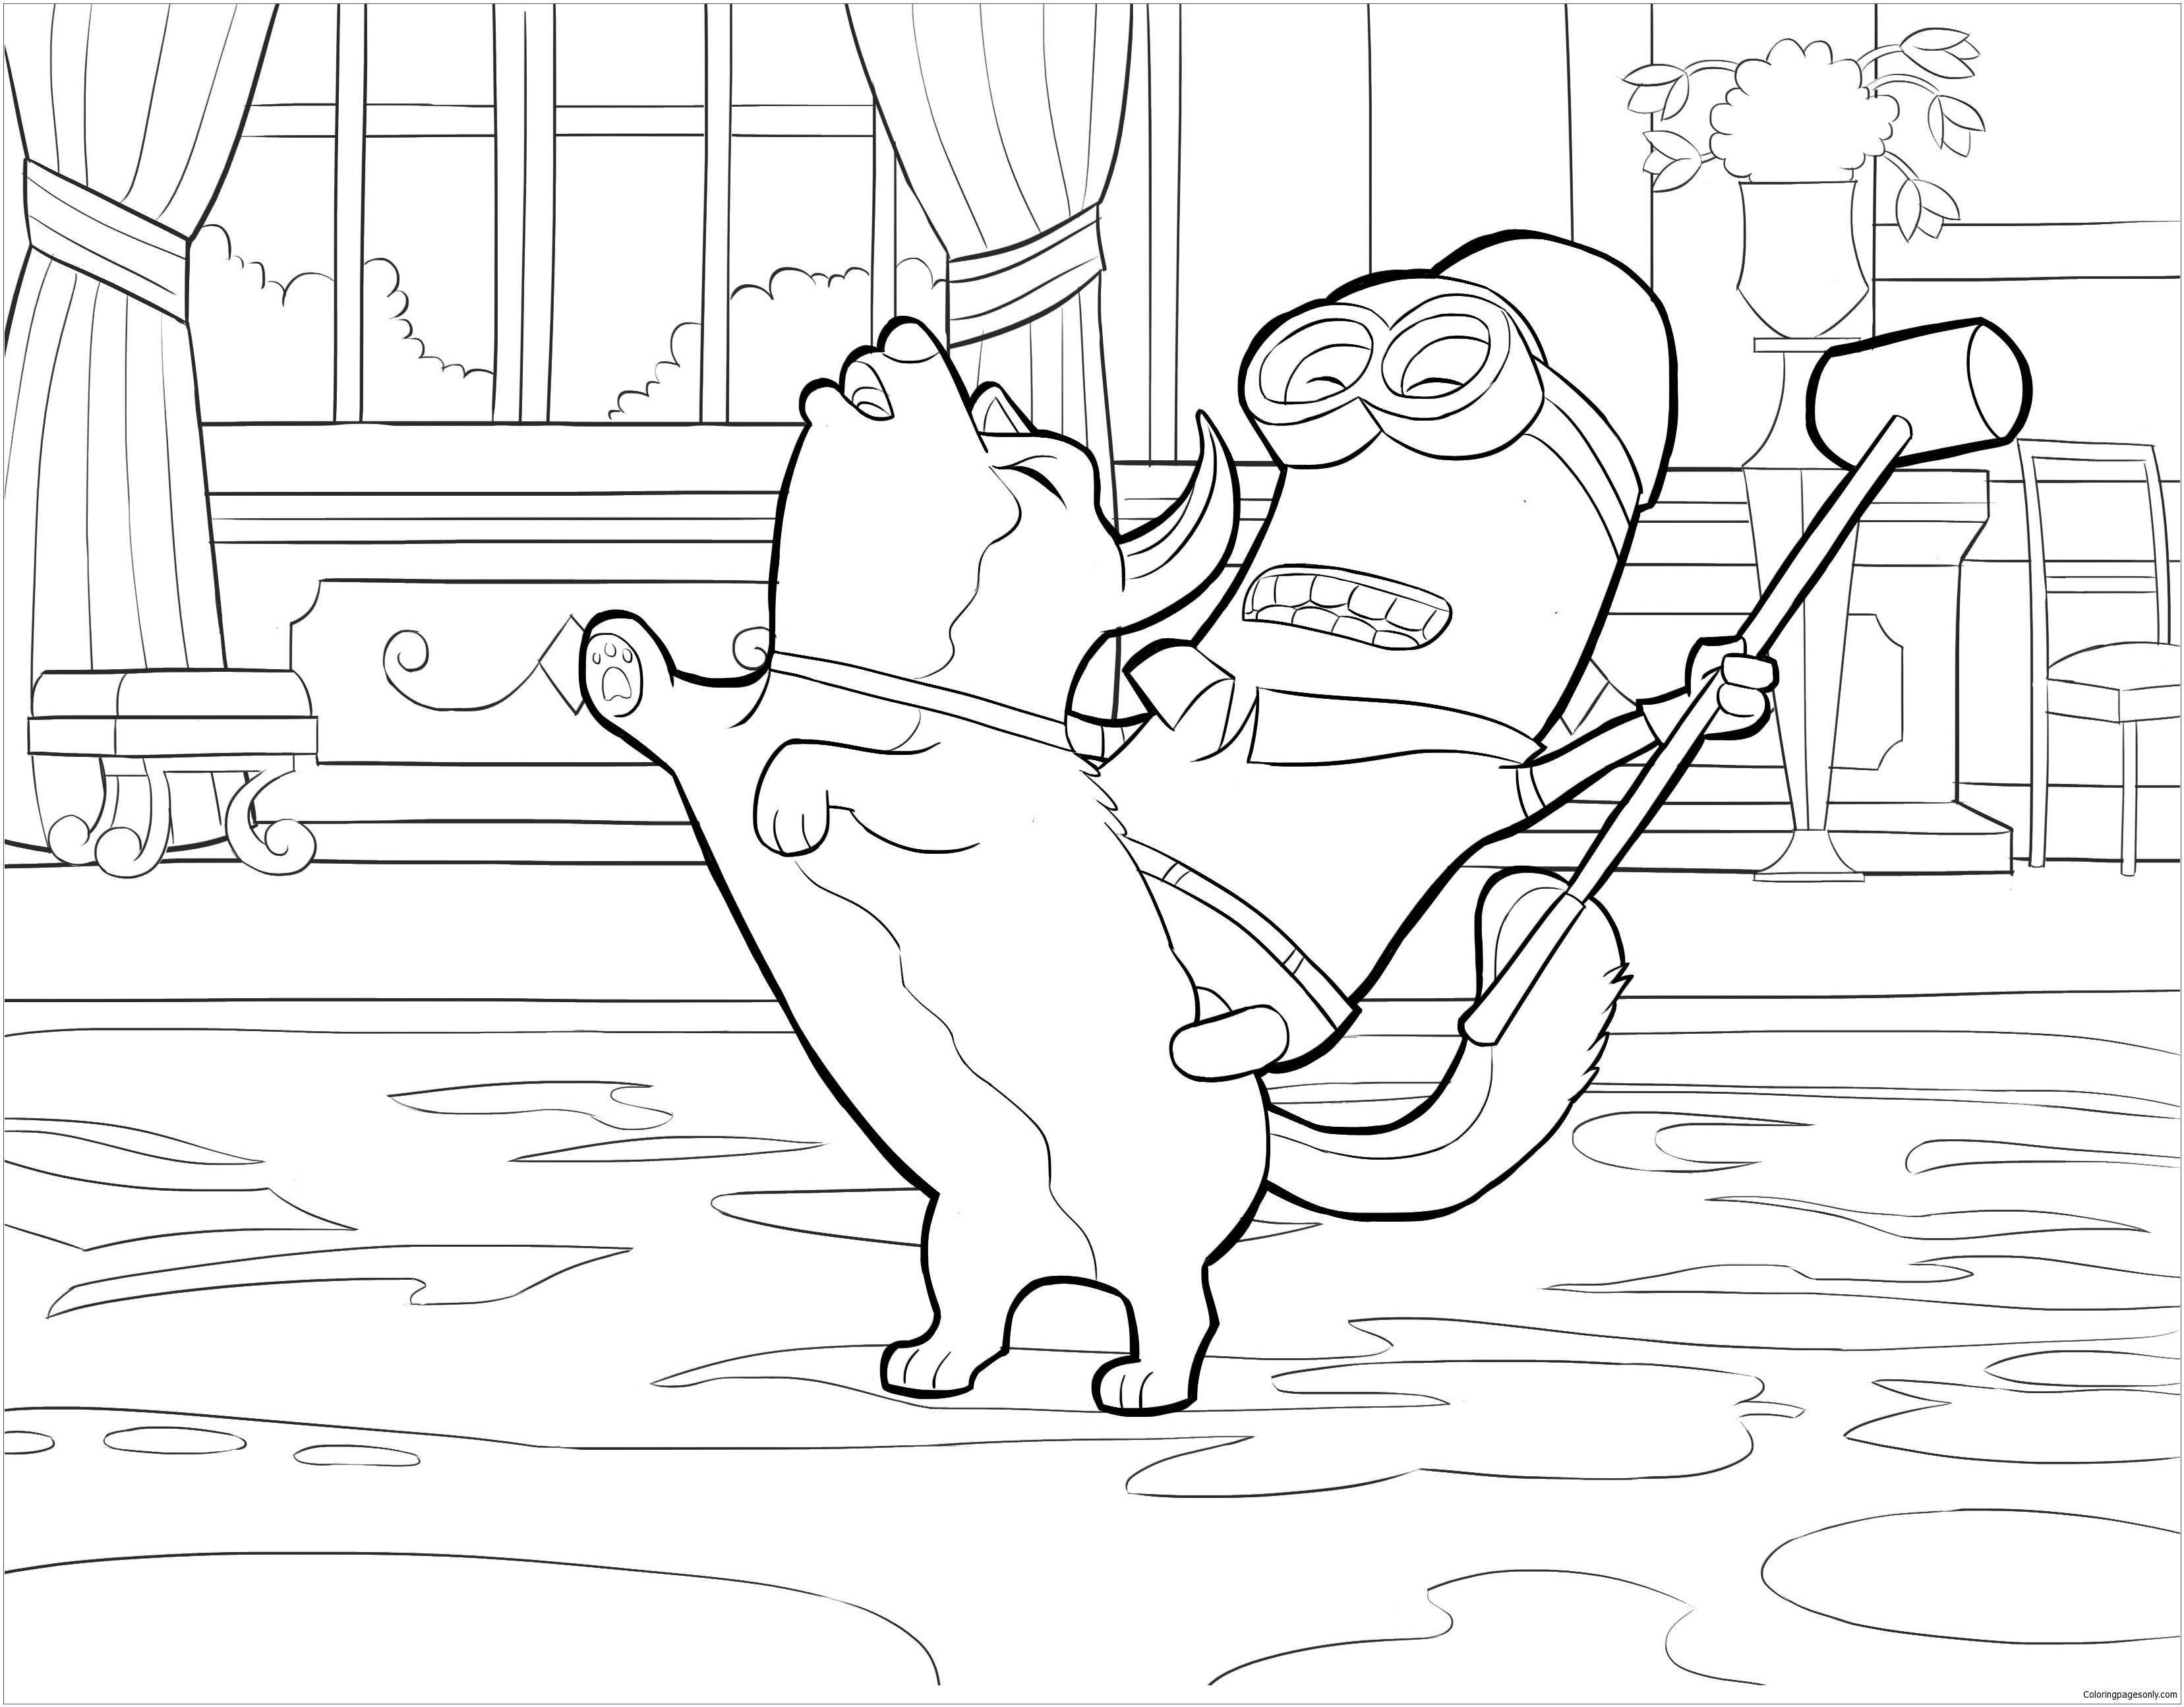 Kevin Riding Dog Coloring Page